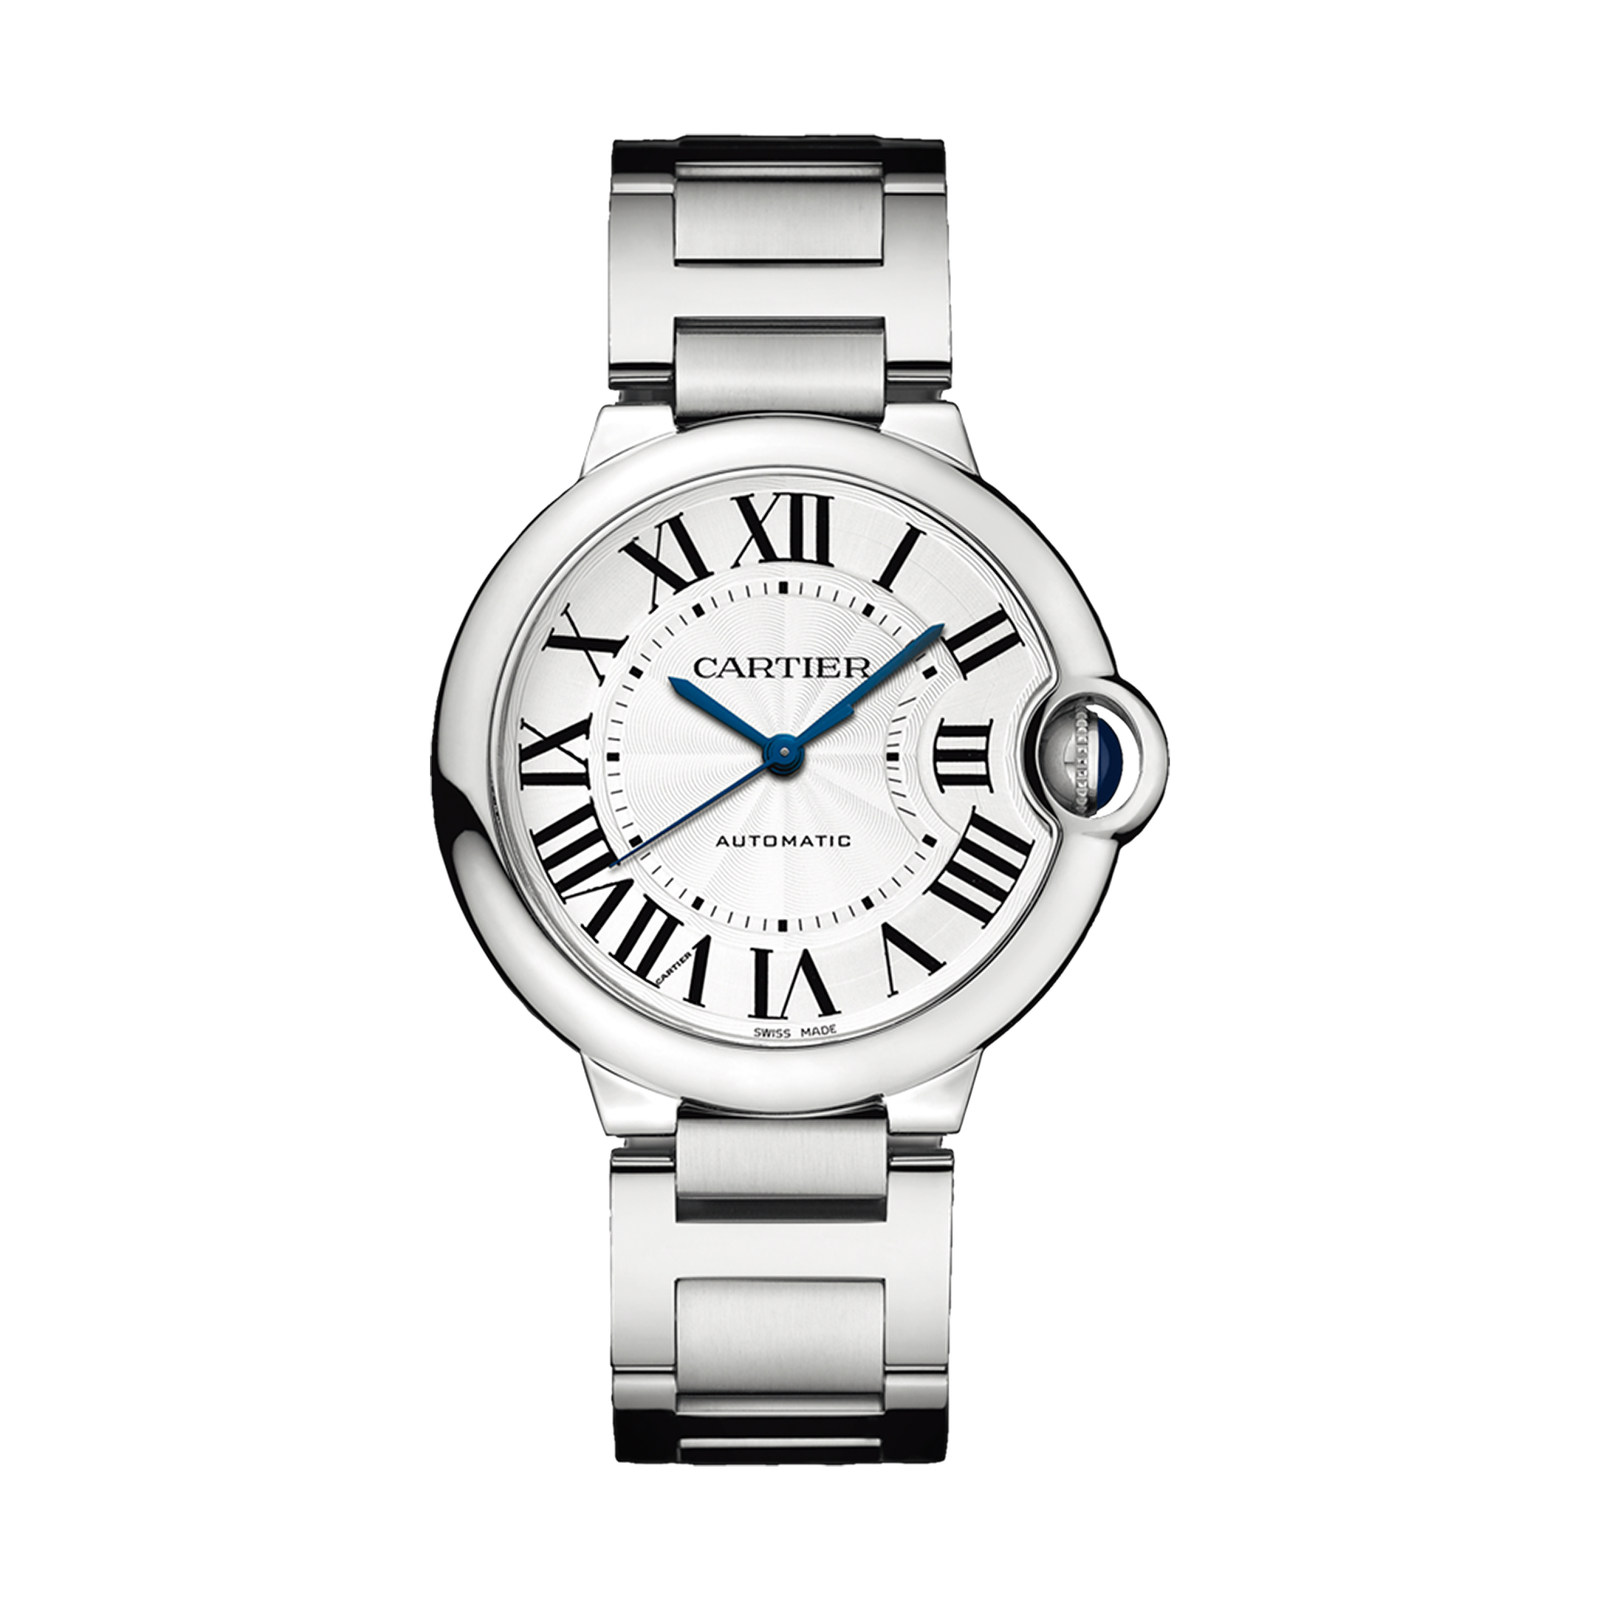 Ballon Bleu de Cartier watch  779b66325863